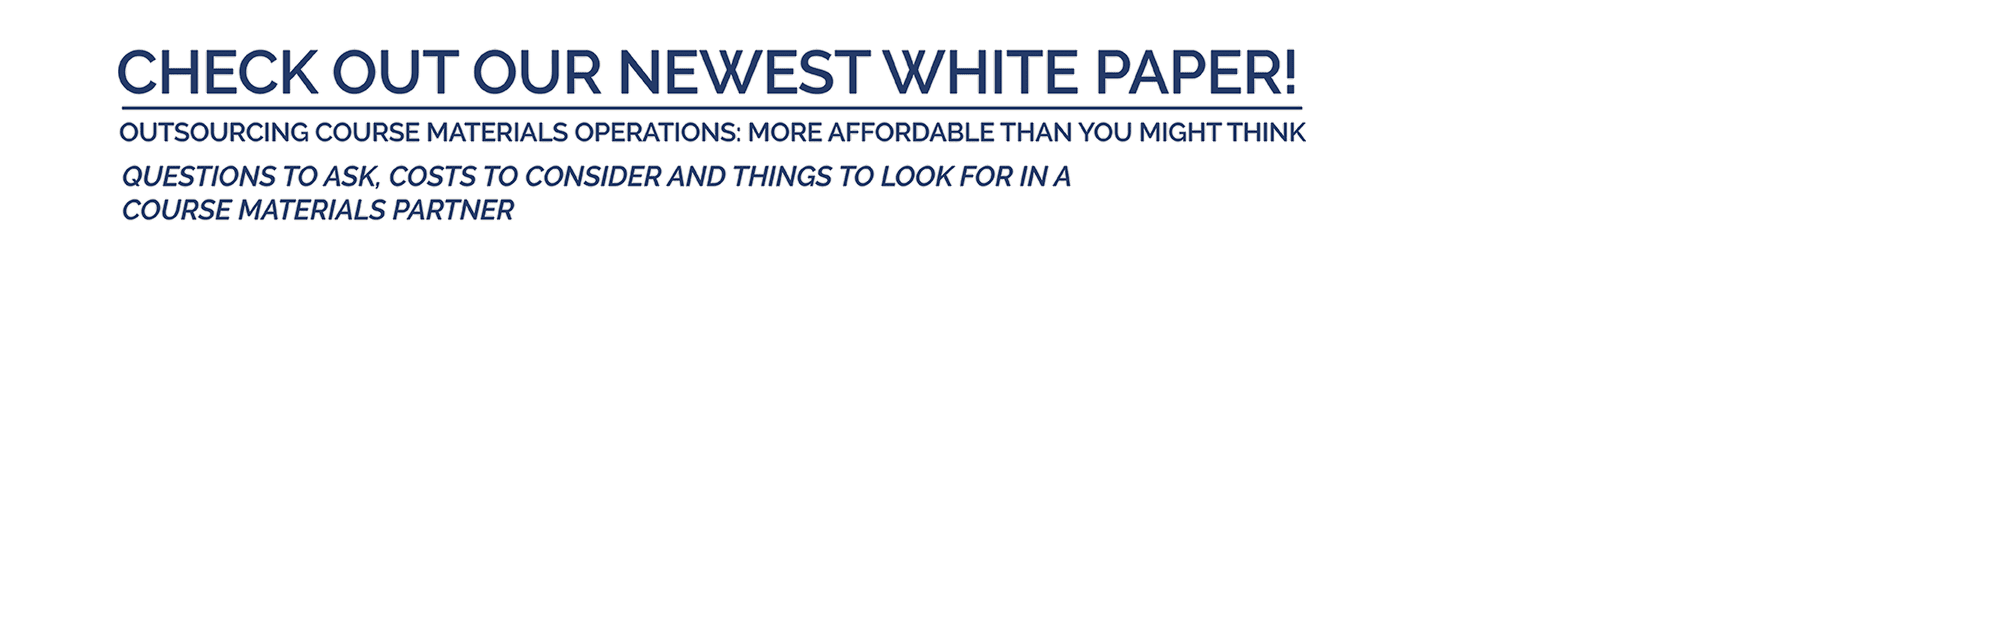 Check out our white paper